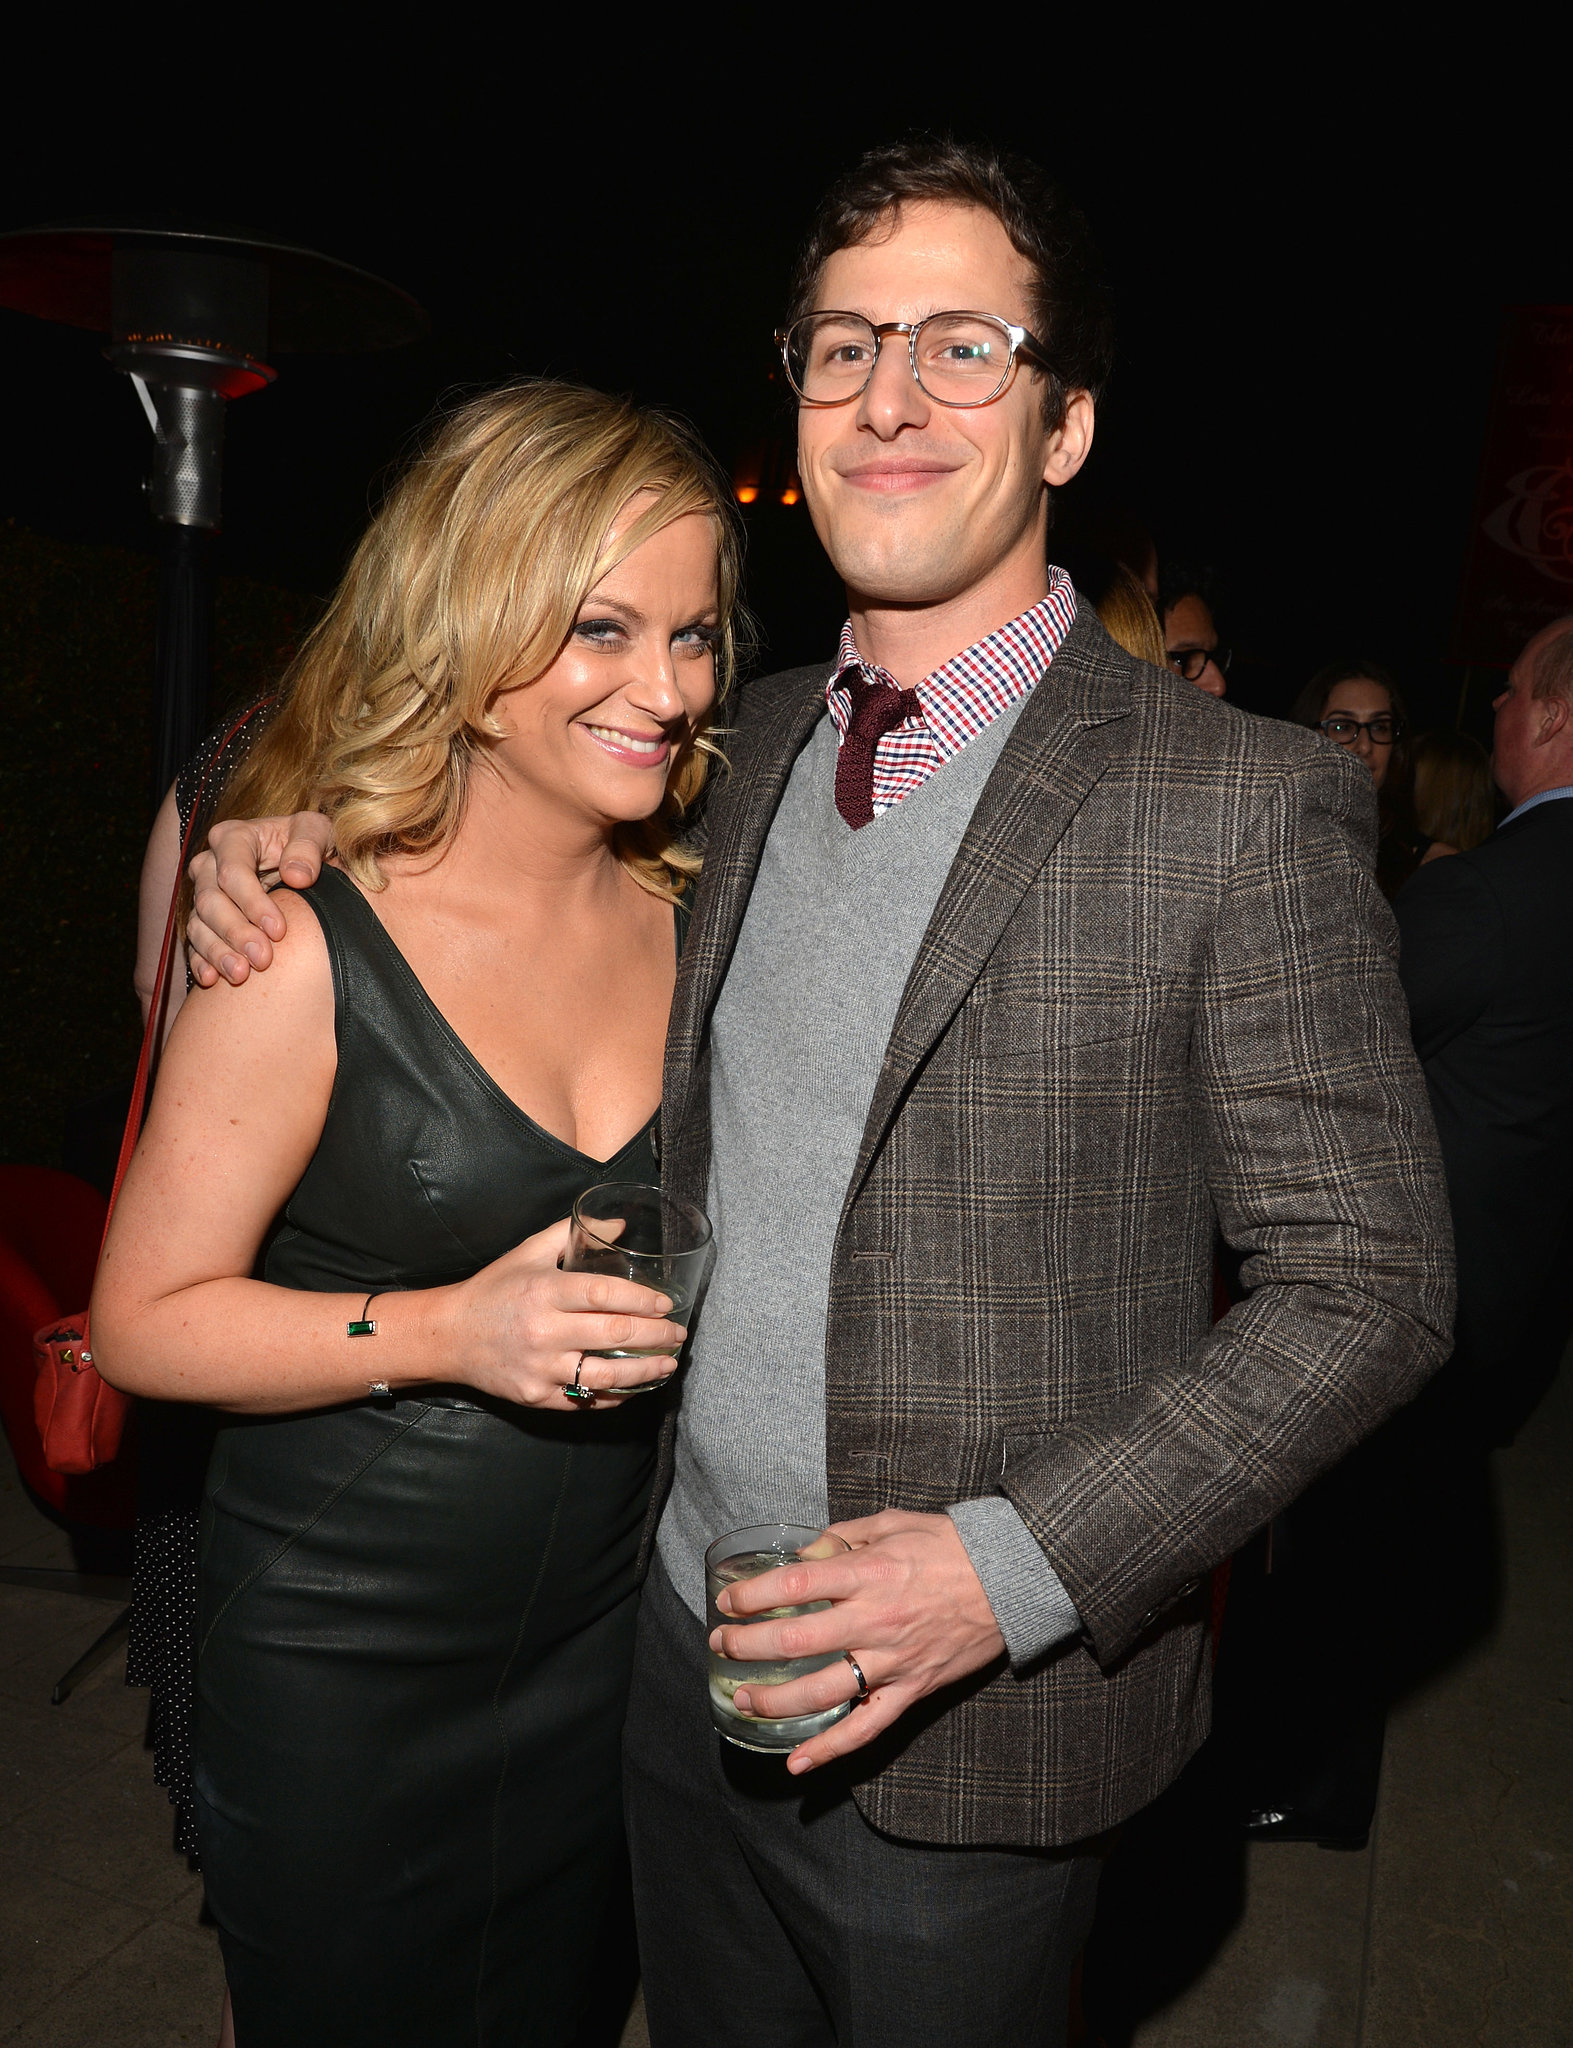 SNL alums Amy Poehler and Andy Samberg met up inside the event.